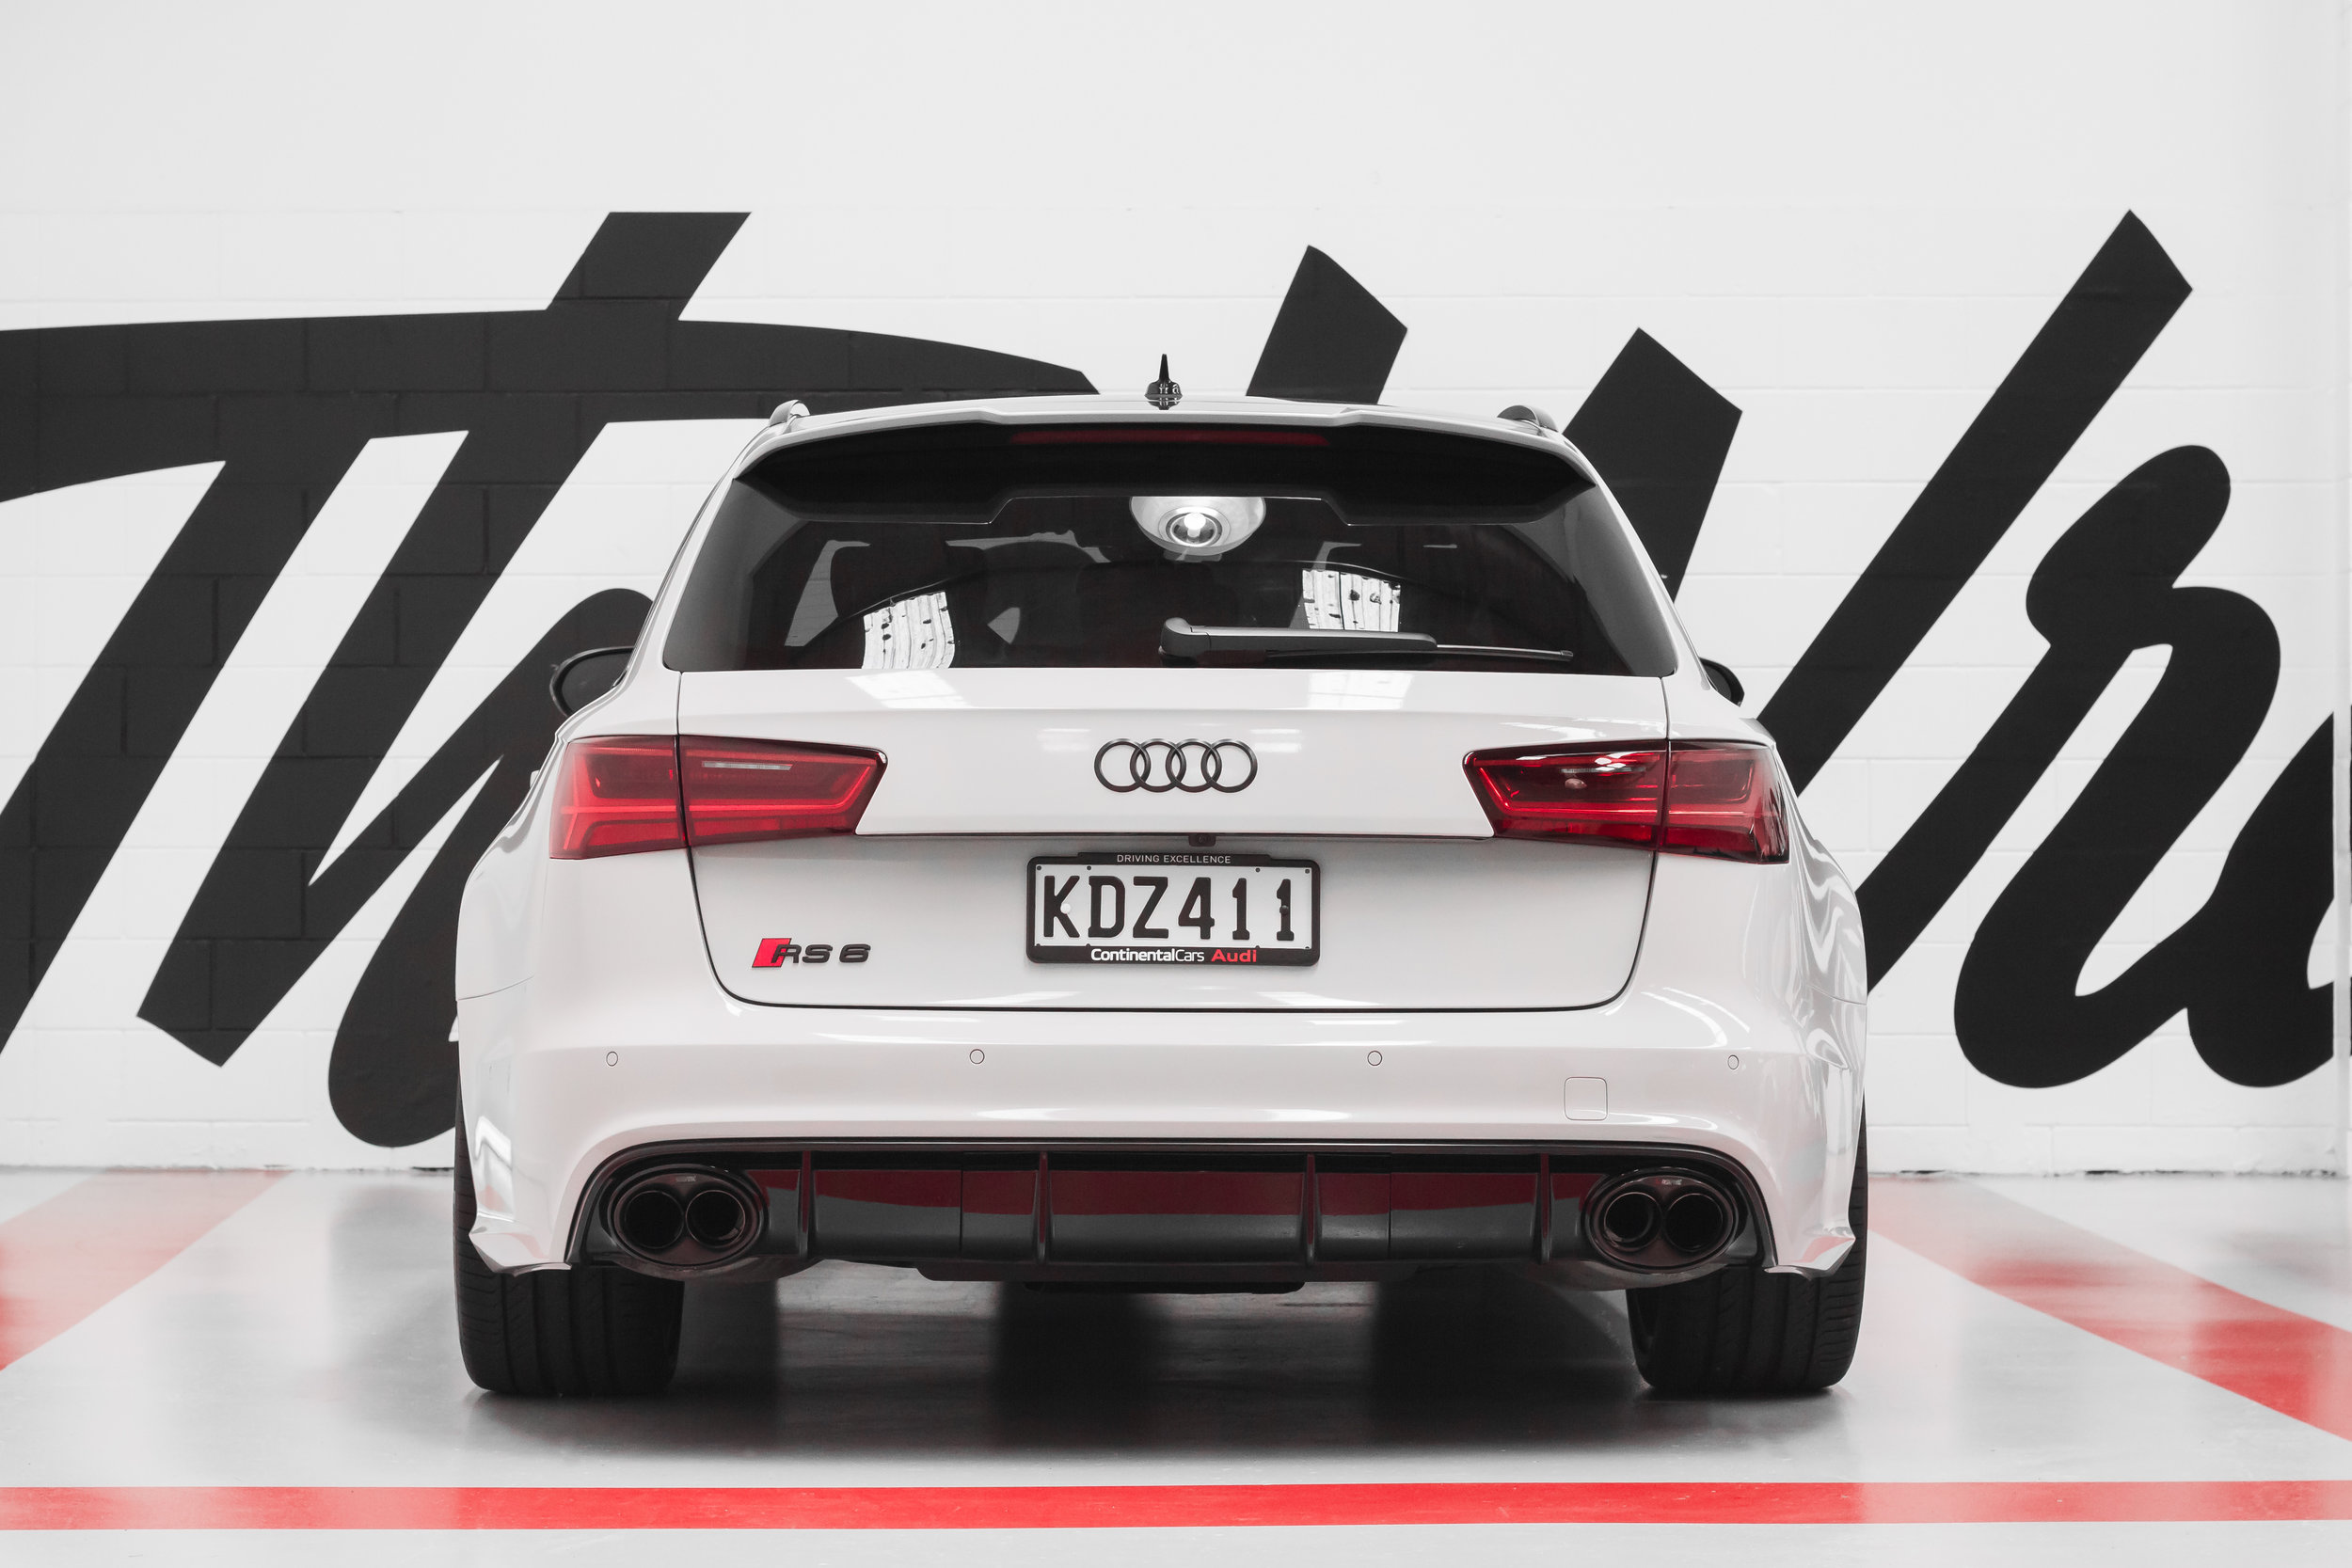 RS6 rear bumper